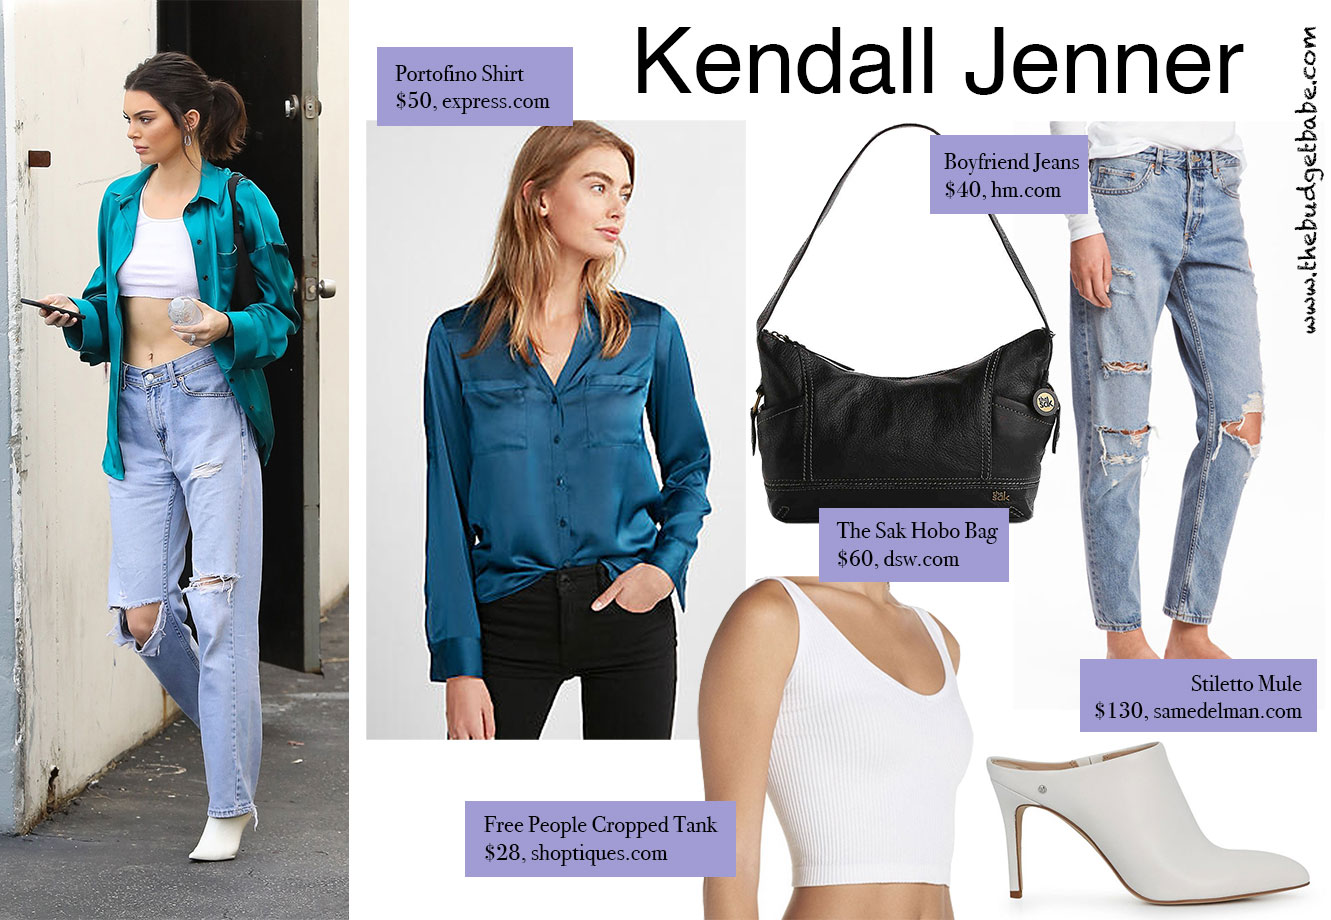 Kendall Jenner's teal jacket and jeans look for less